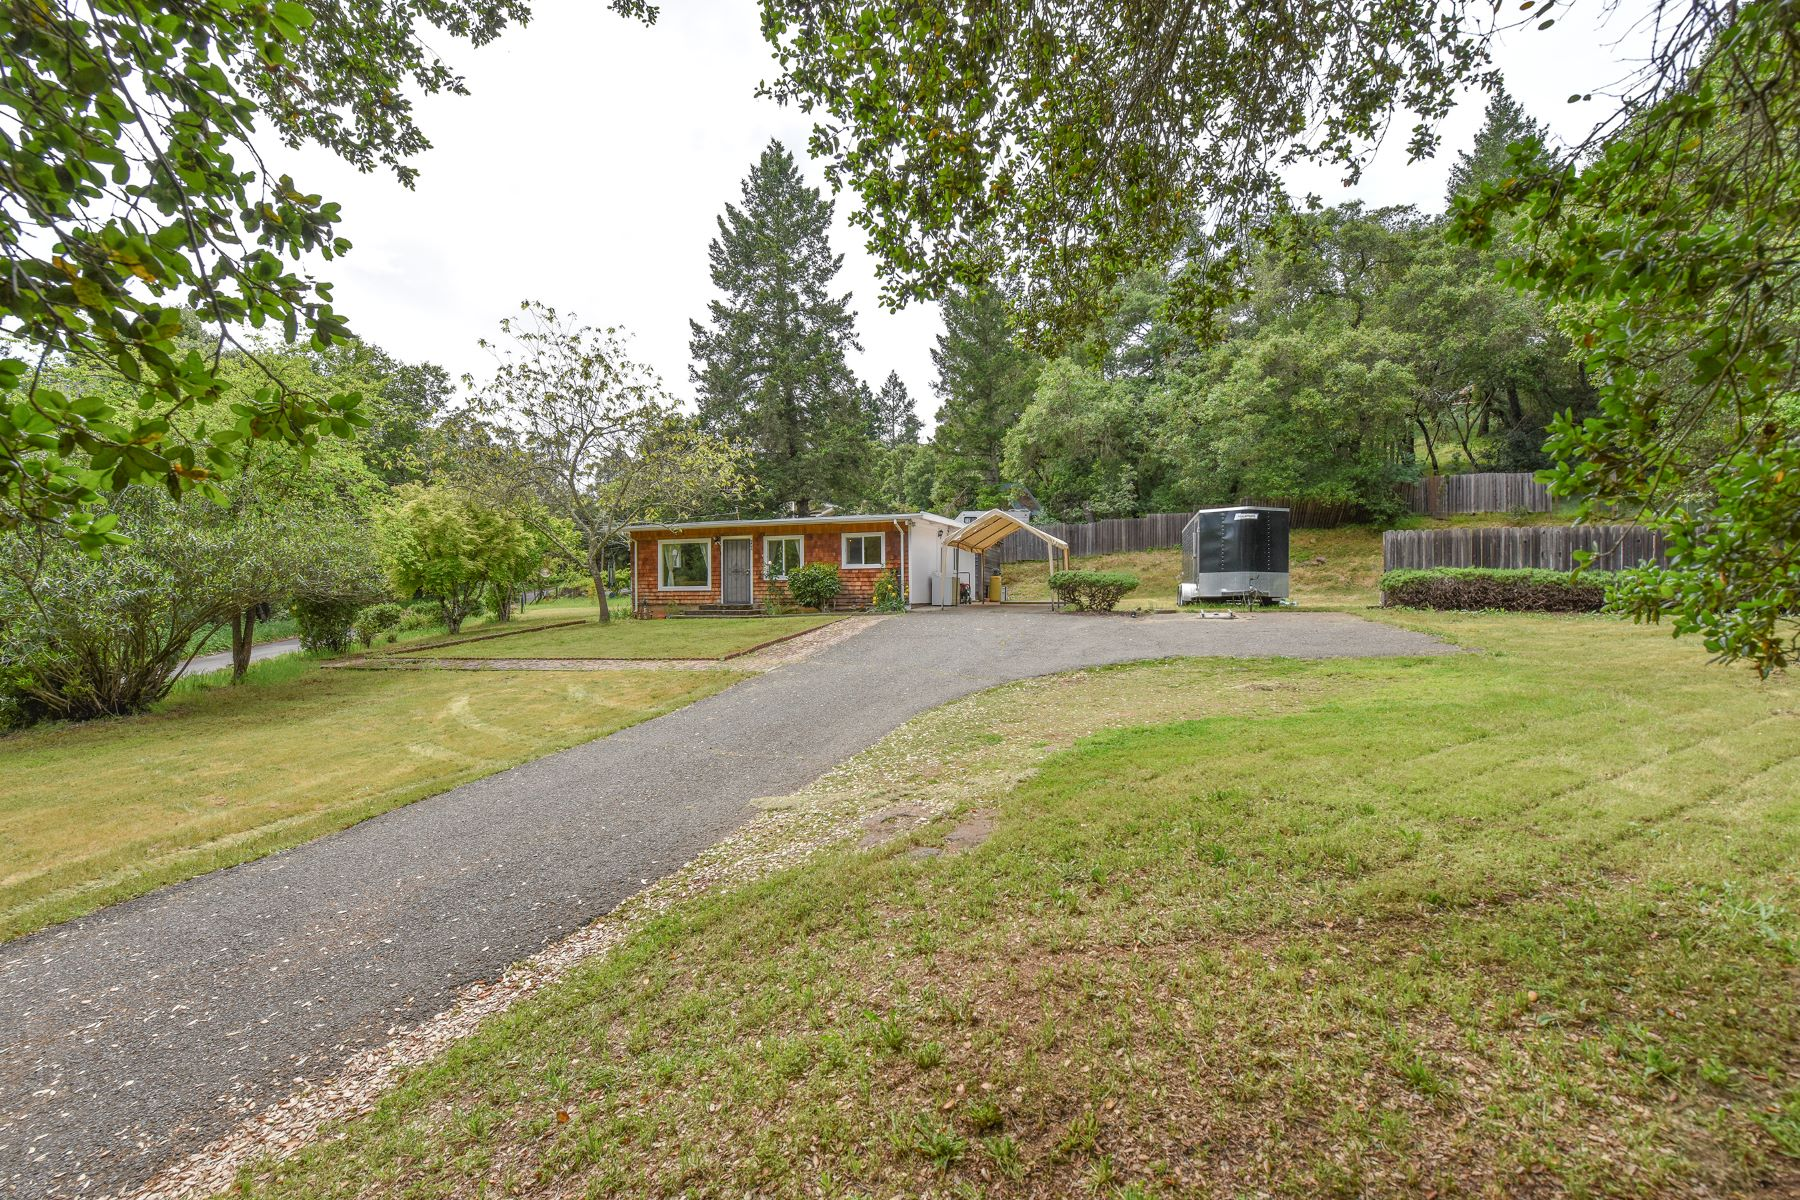 Single Family Home for Sale at A Country Cottage with Inspiring Possibilities 690 Sunnyside Road St. Helena, California 94574 United States